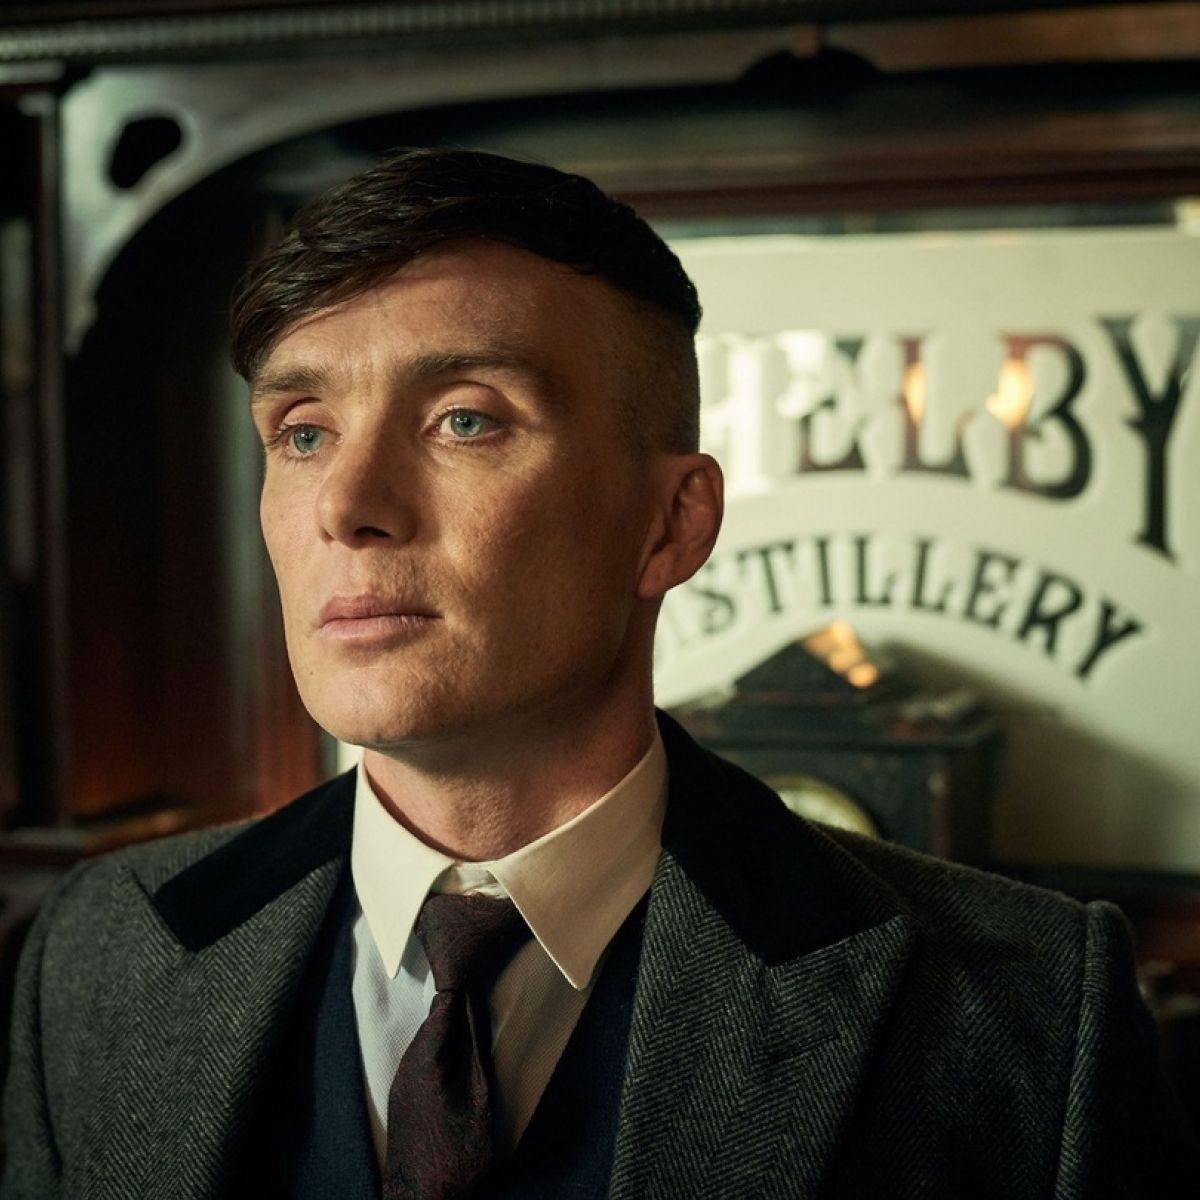 Peaky Blinders: all too rushed, leaving more questions than answers